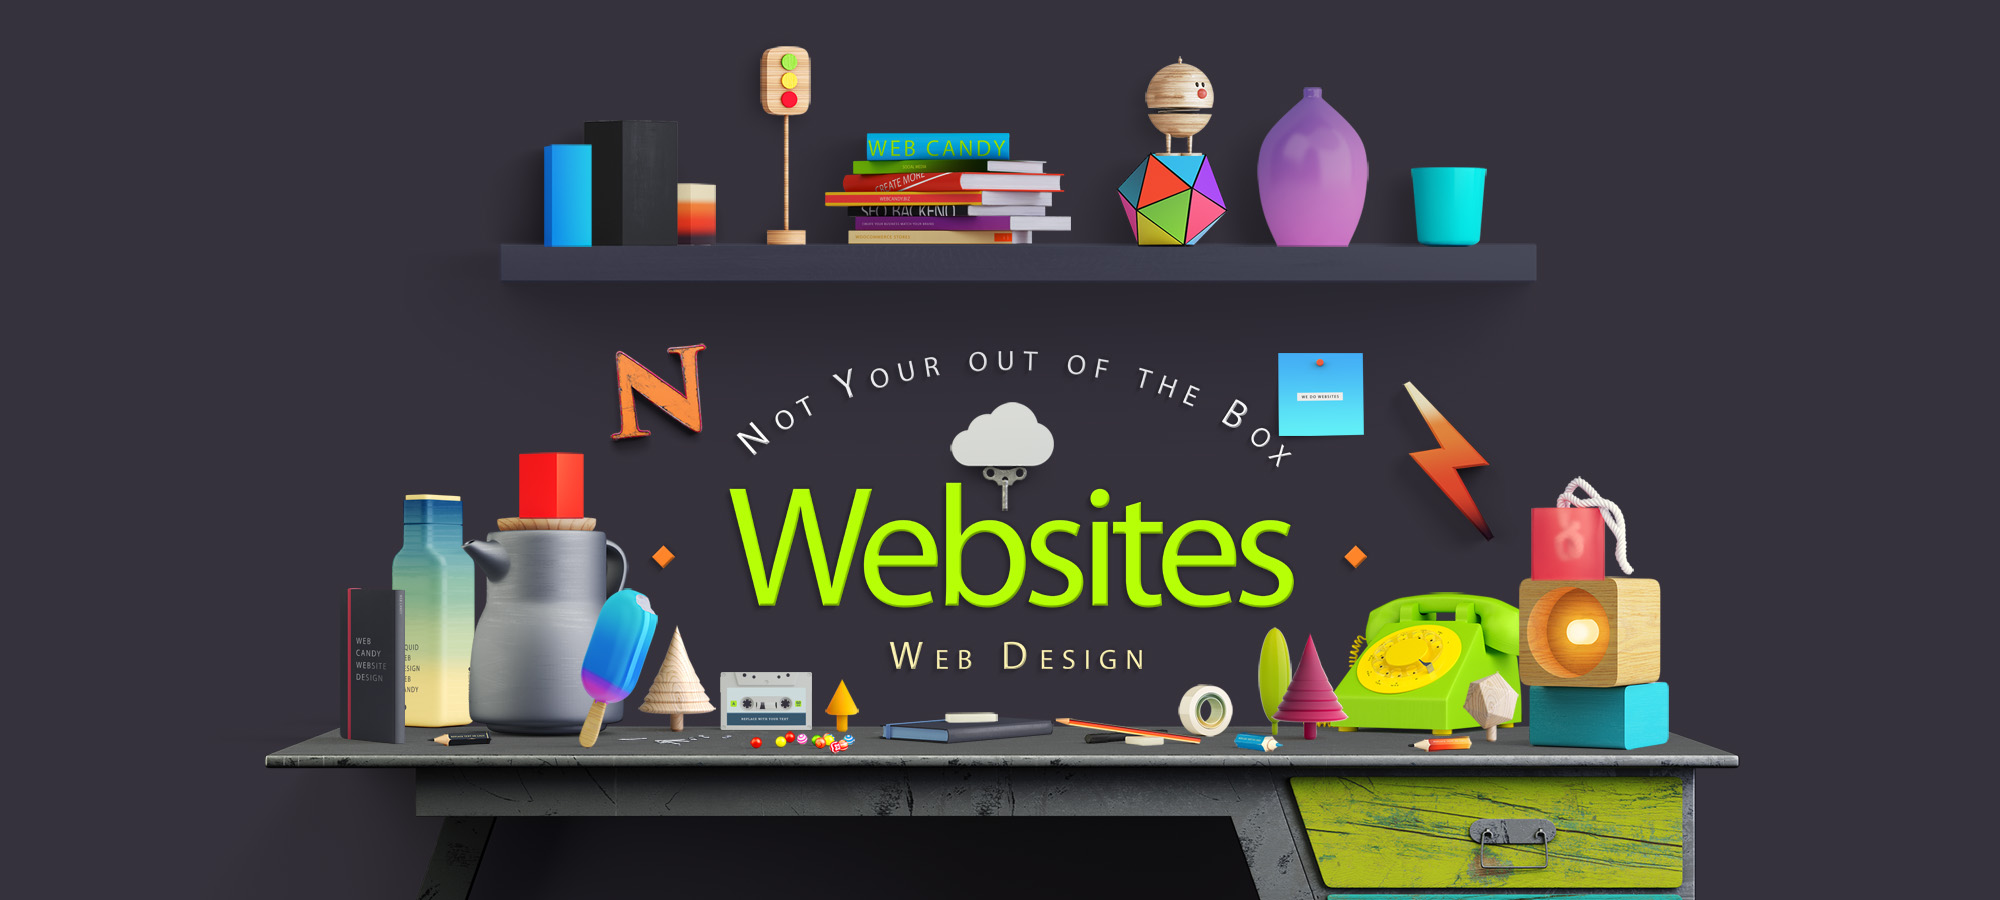 Web Design Website Development Services Merlion